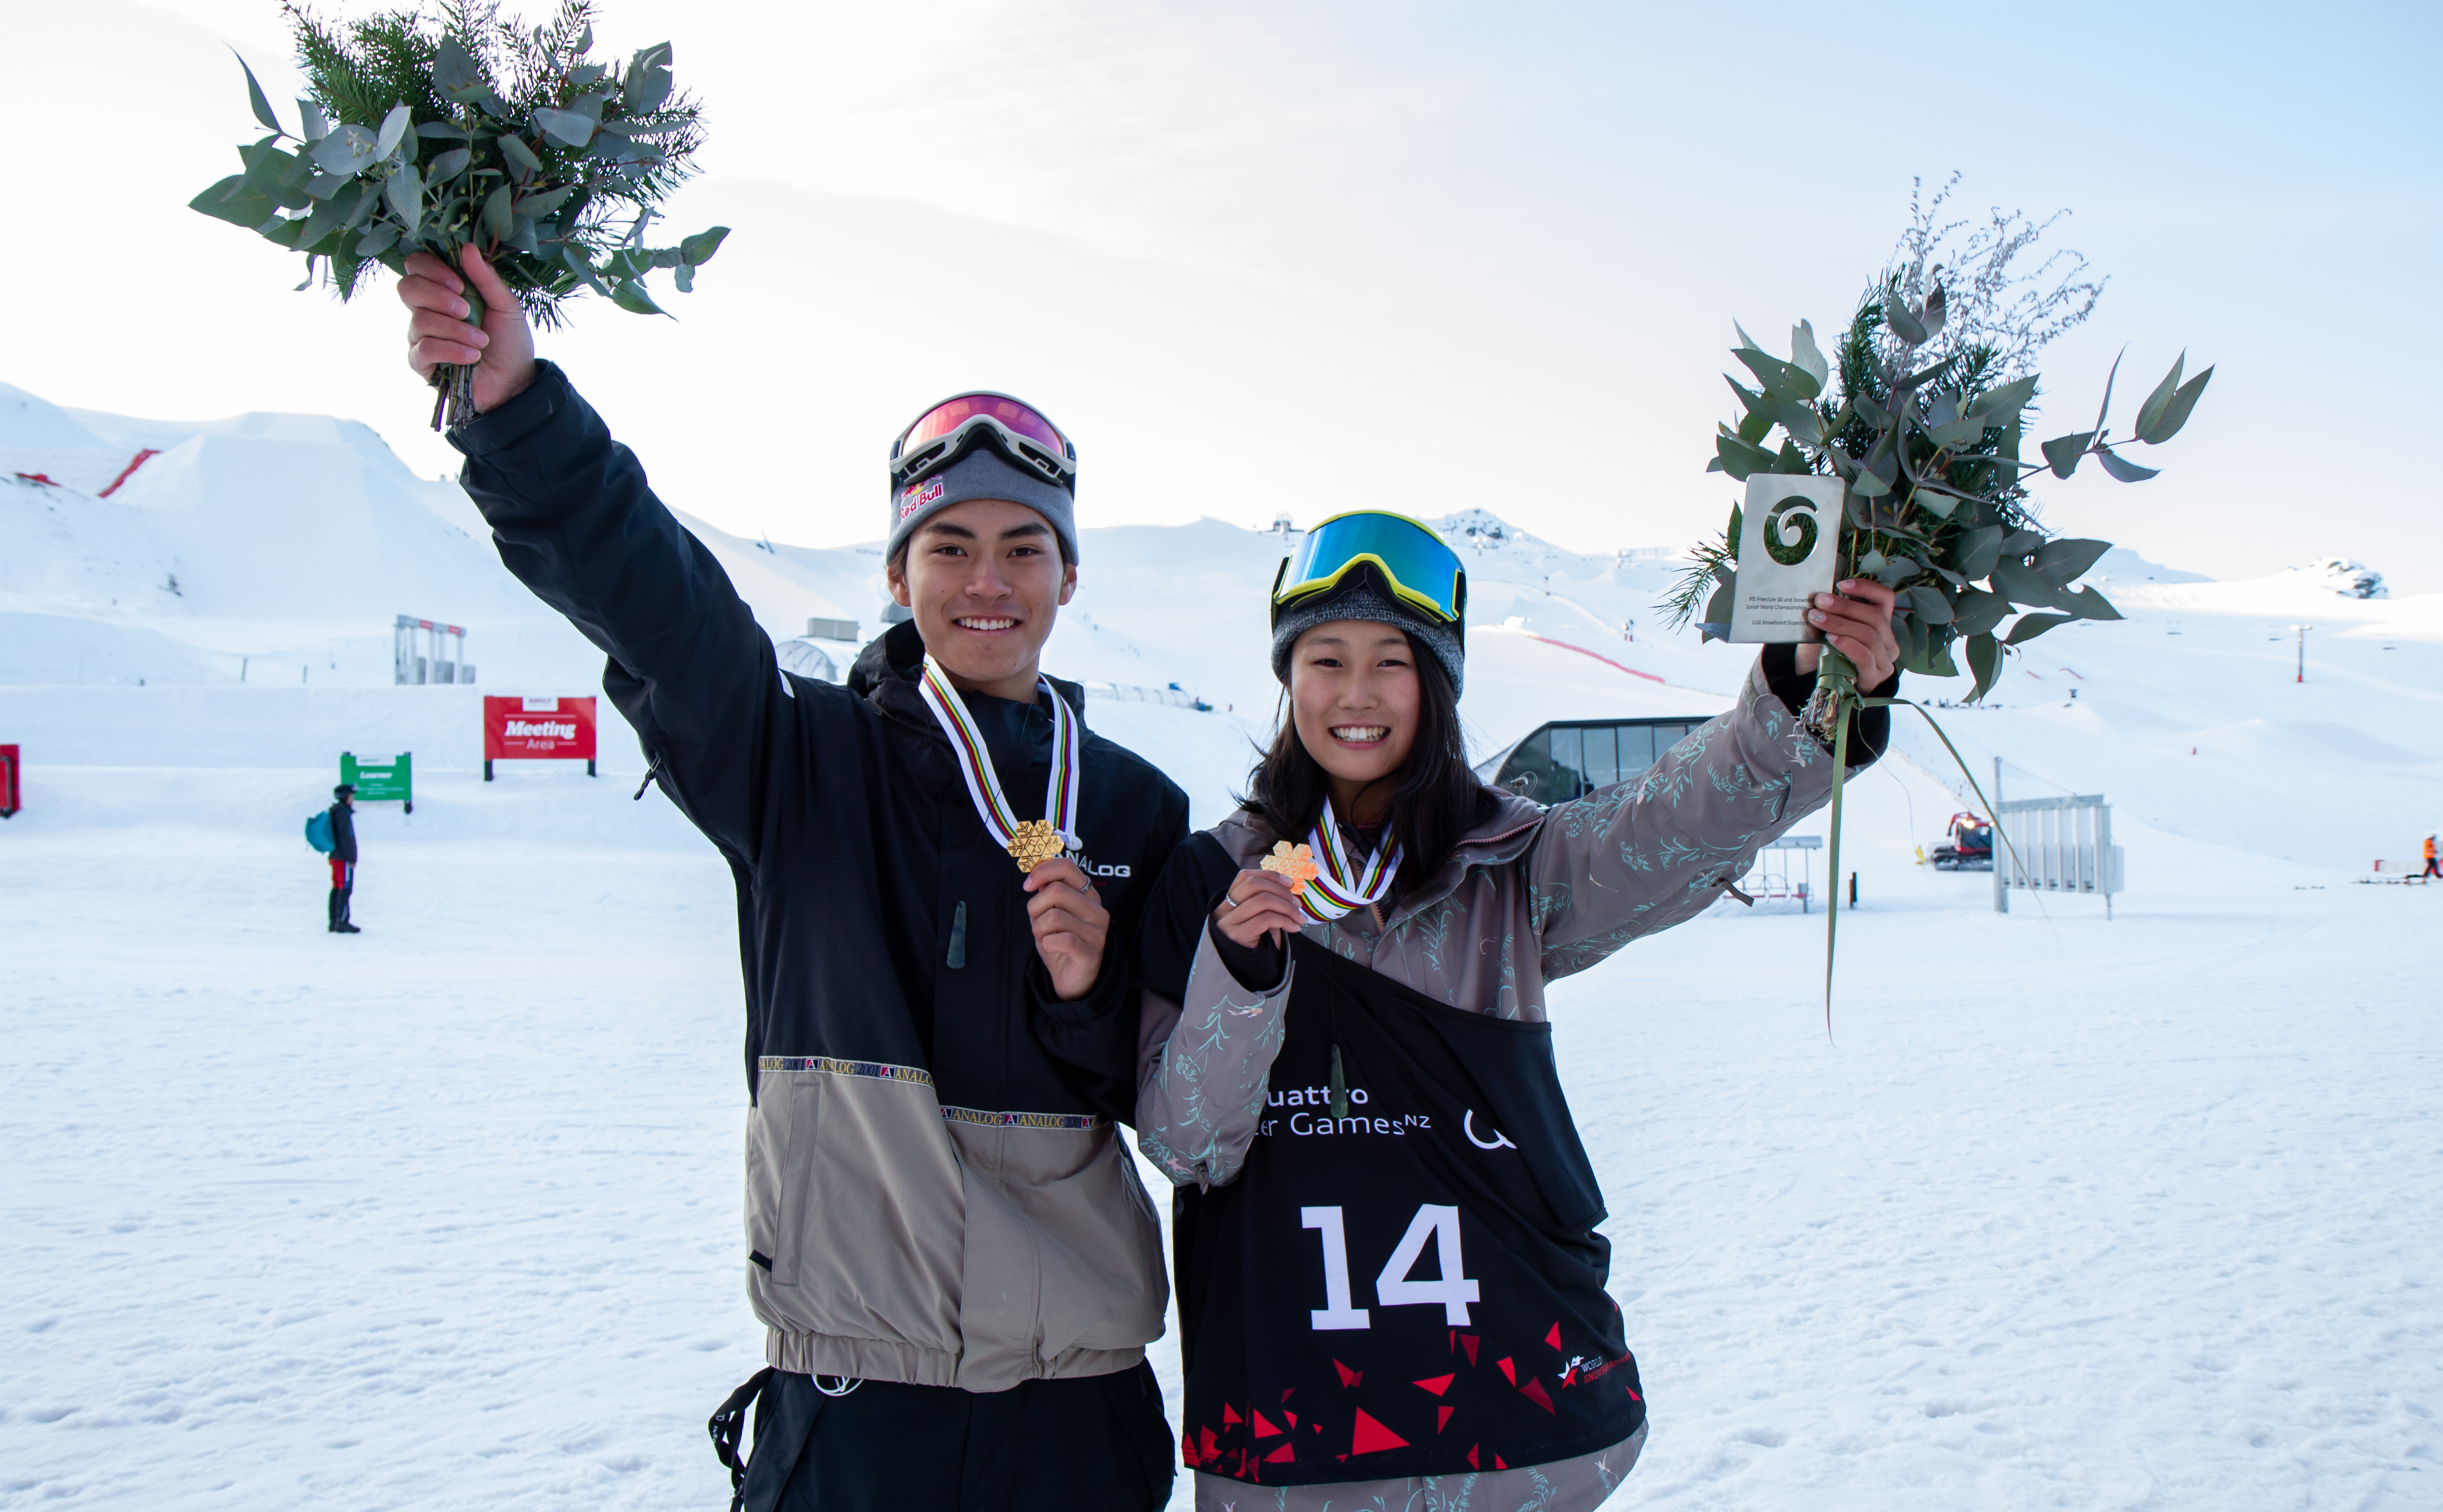 Takeru Otsuka and Kokomo Murase with matching gold medals at the Junior World Championships slopestyle at Cardrona.